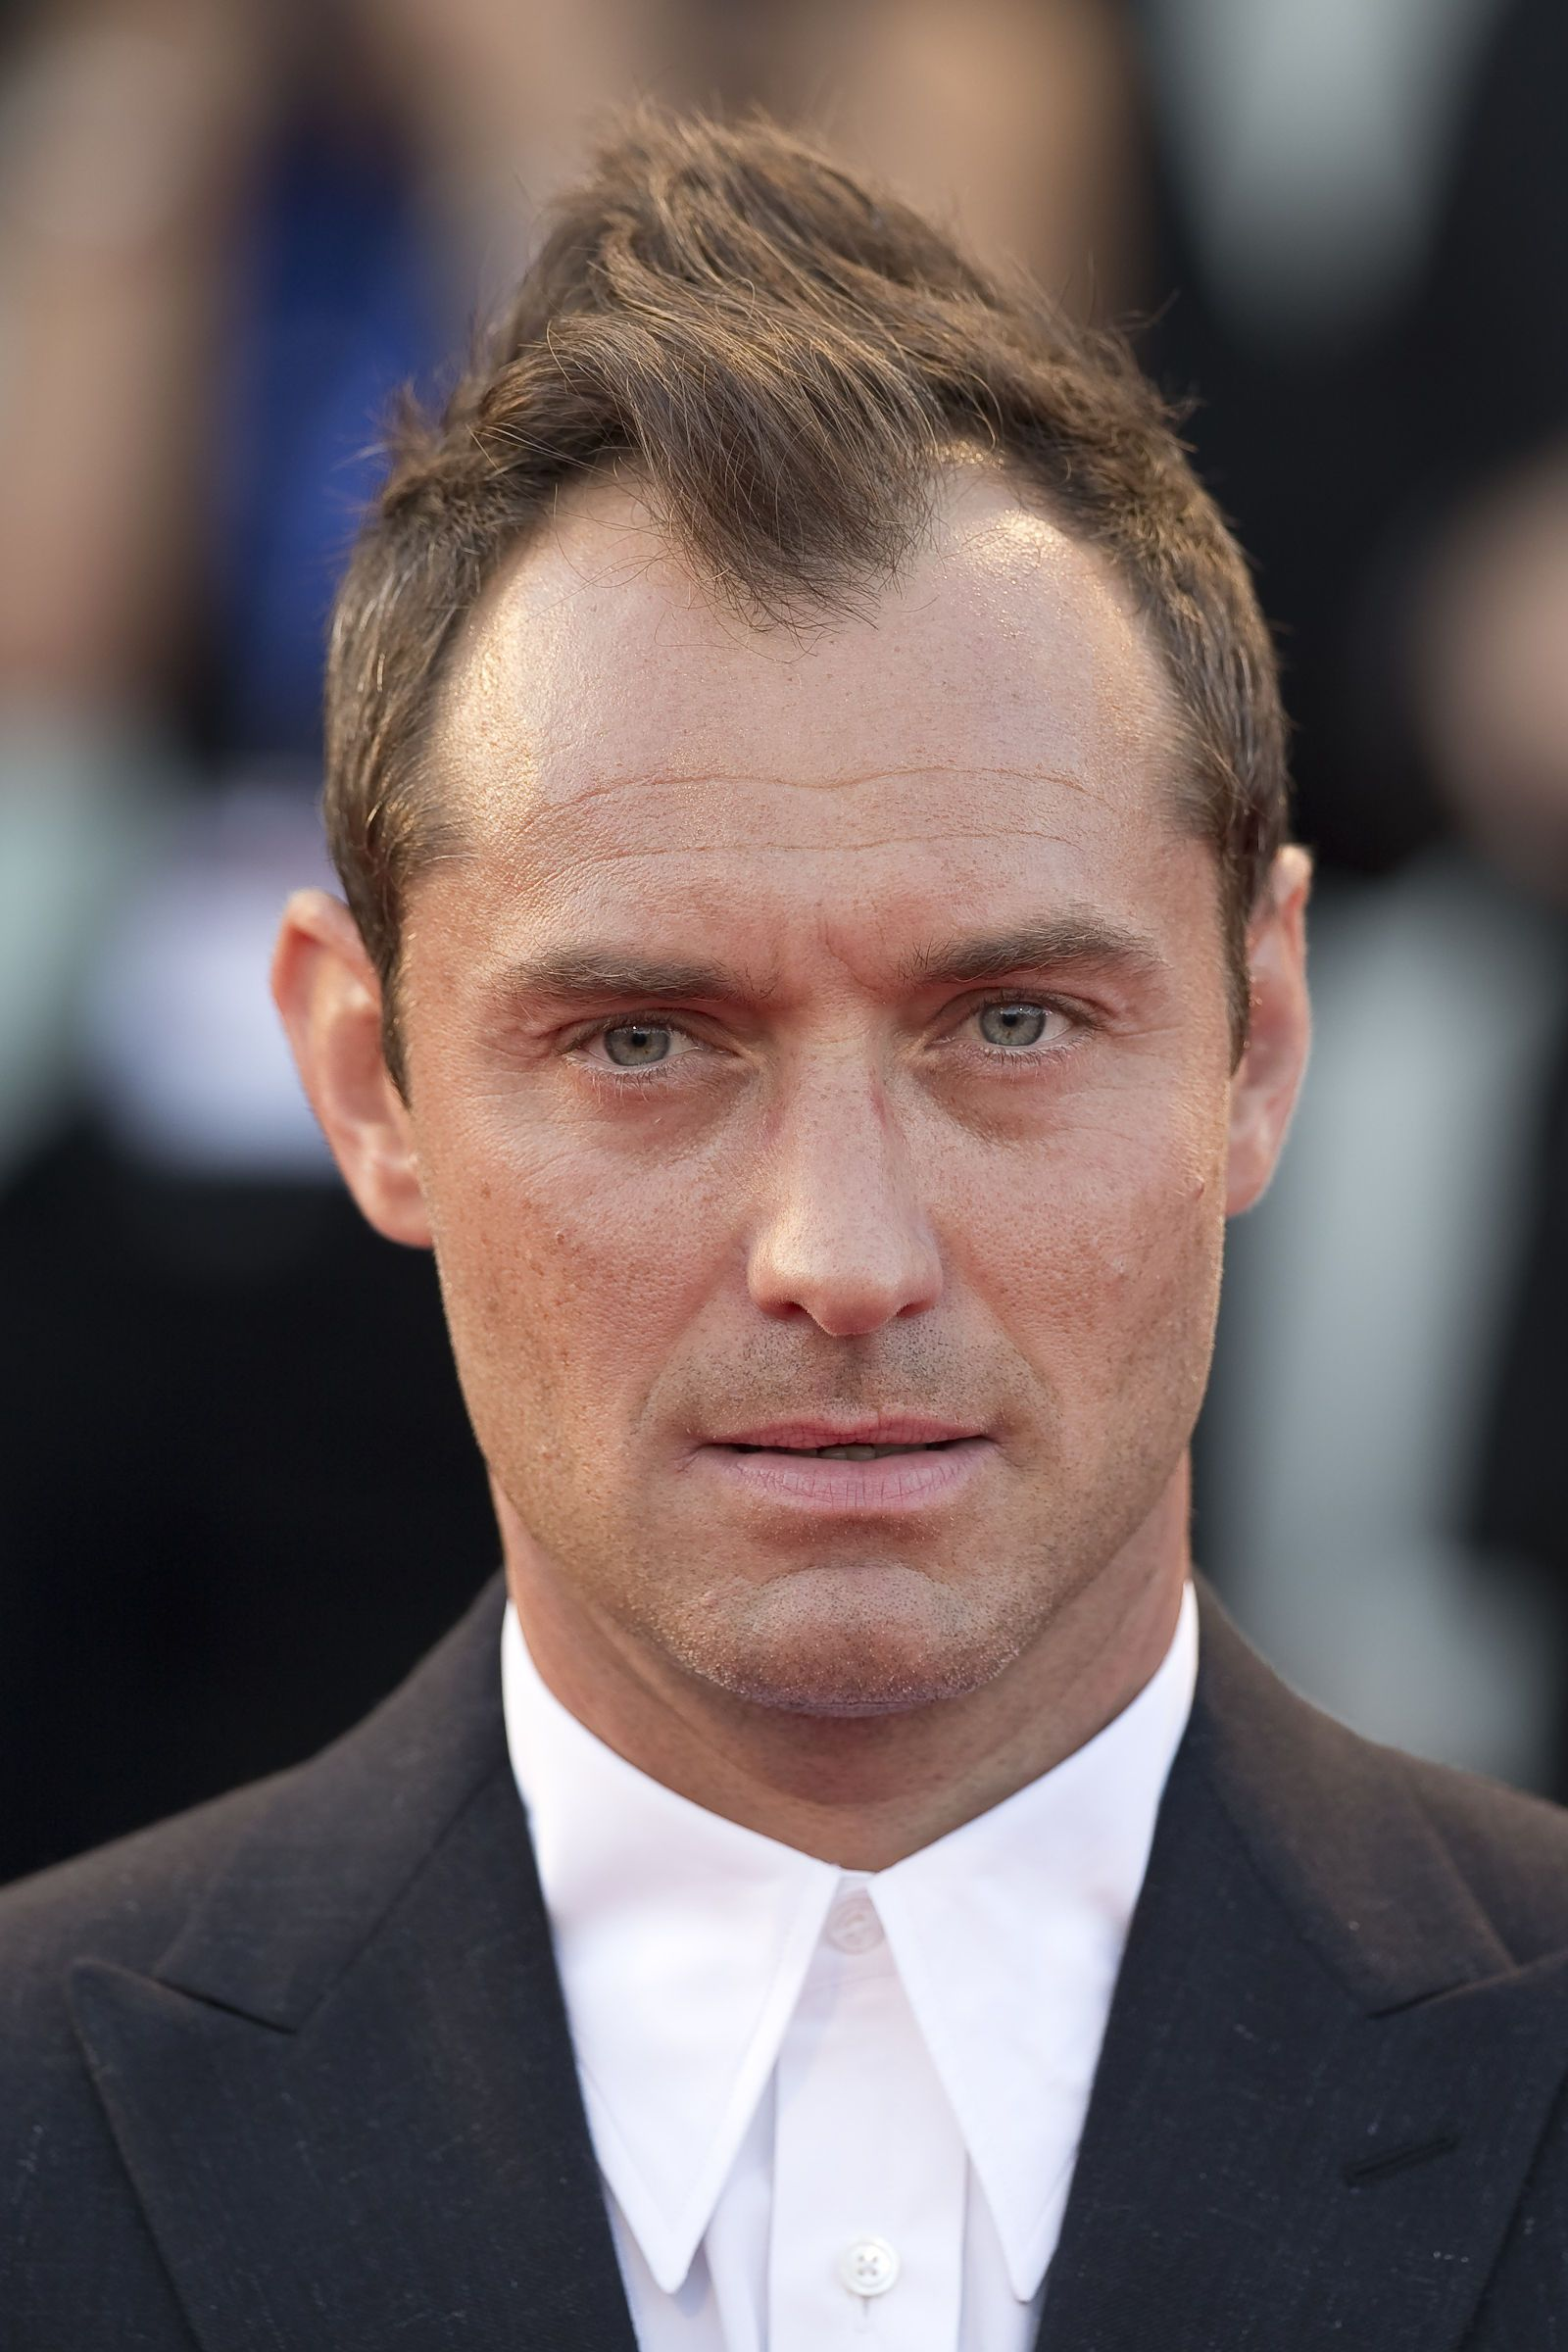 Jude law mohawk menshairstyles mens hairstyles in